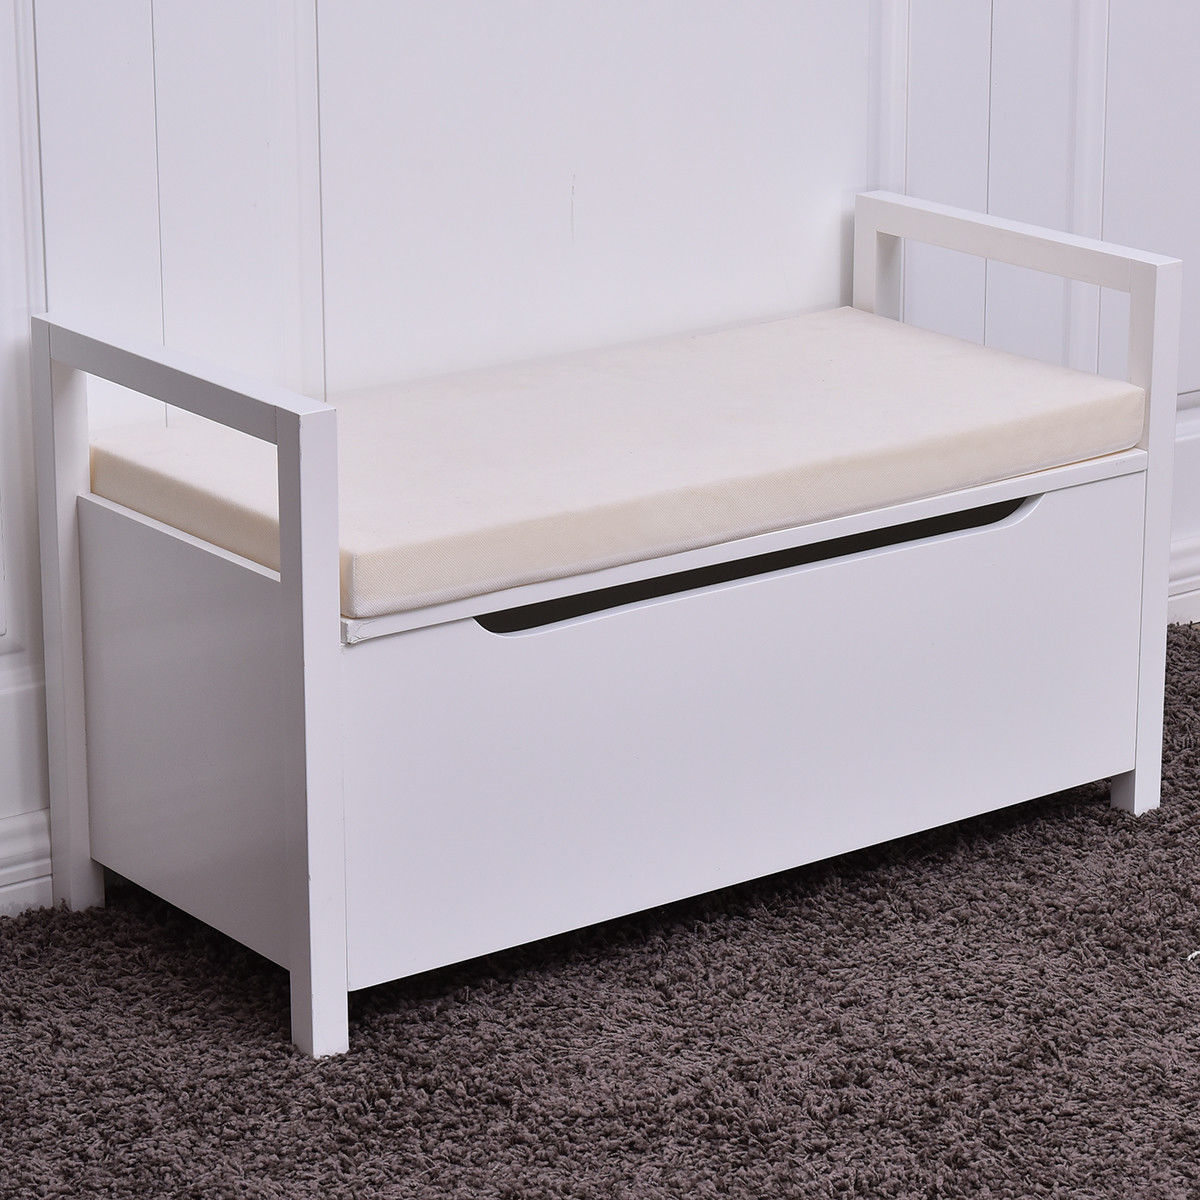 Merveilleux Product Image Costway Shoe Bench Storage Rack Cushion Seat Ottoman Bedroom  Hallway Entryway White